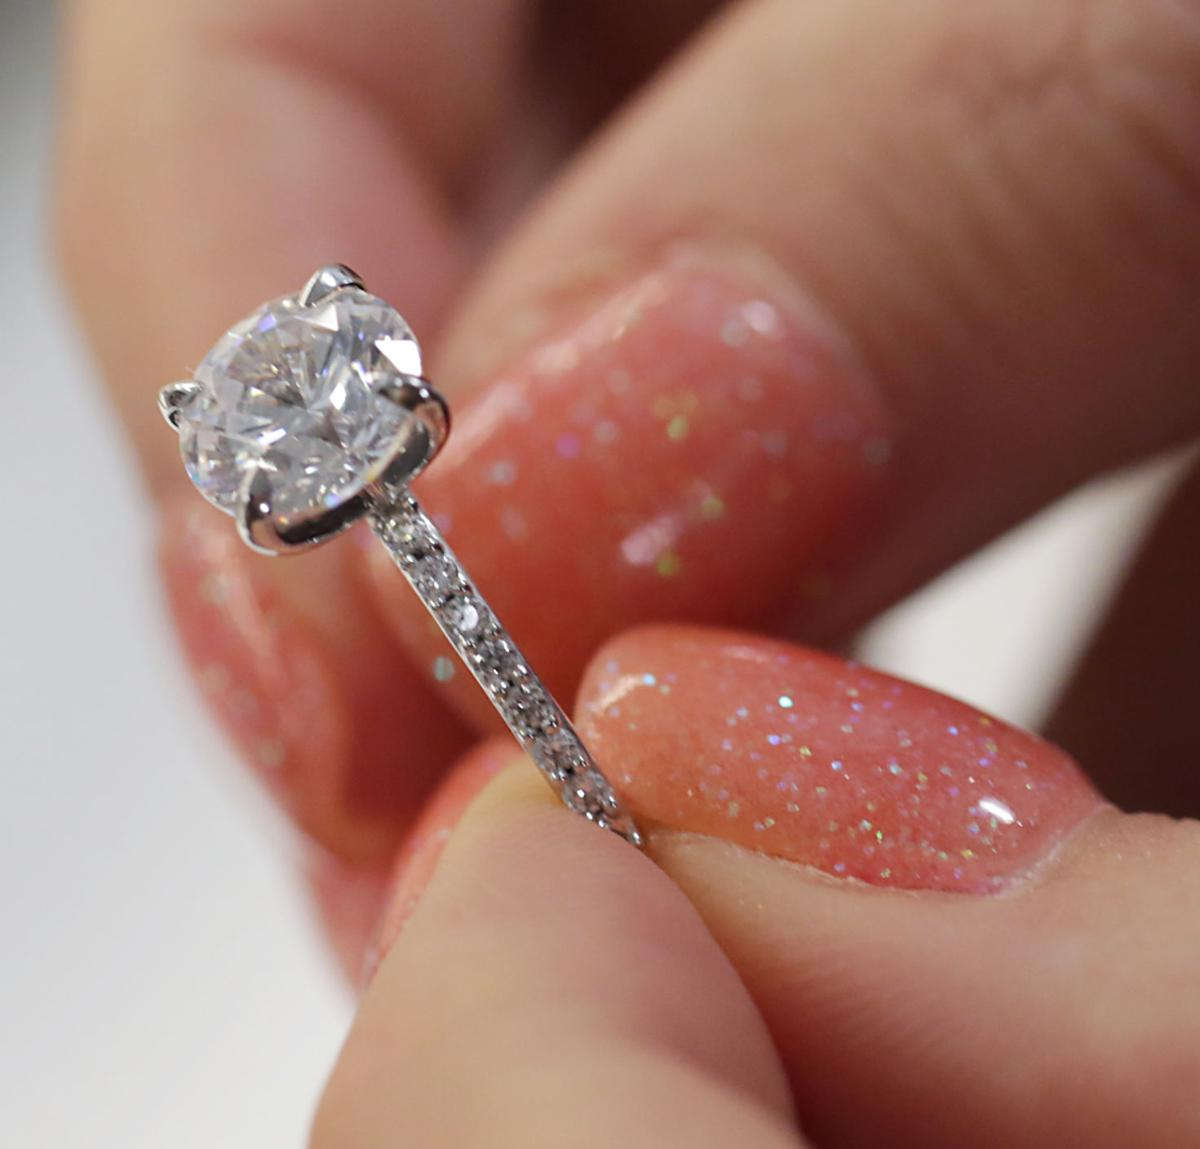 Lab-Grown Diamonds Vs. Earth-Mined: Cost, Quality And